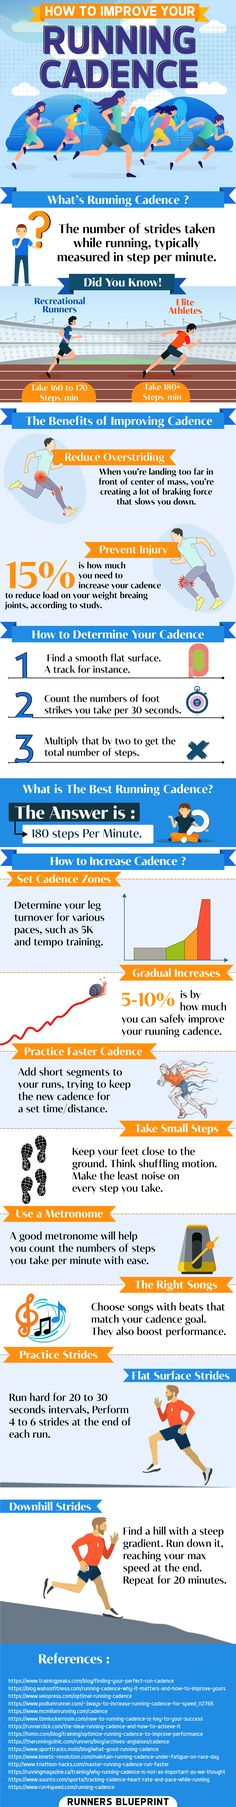 One of the fastest ways to improve your running speed and performance is through improving cadence. Yes, it's such an important aspect of efficient running. And today you're in luck.  In this infographic, I'm delving into the main ways you can go about improving your running cadence in an easy and injury-free way.  Enjoy! Running On Treadmill, Running Workouts, Running Hacks, Running Gear, Marathon Tips, Half Marathon Training, Long Distance Running Tips, Running For Beginners, Fitness Workout For Women